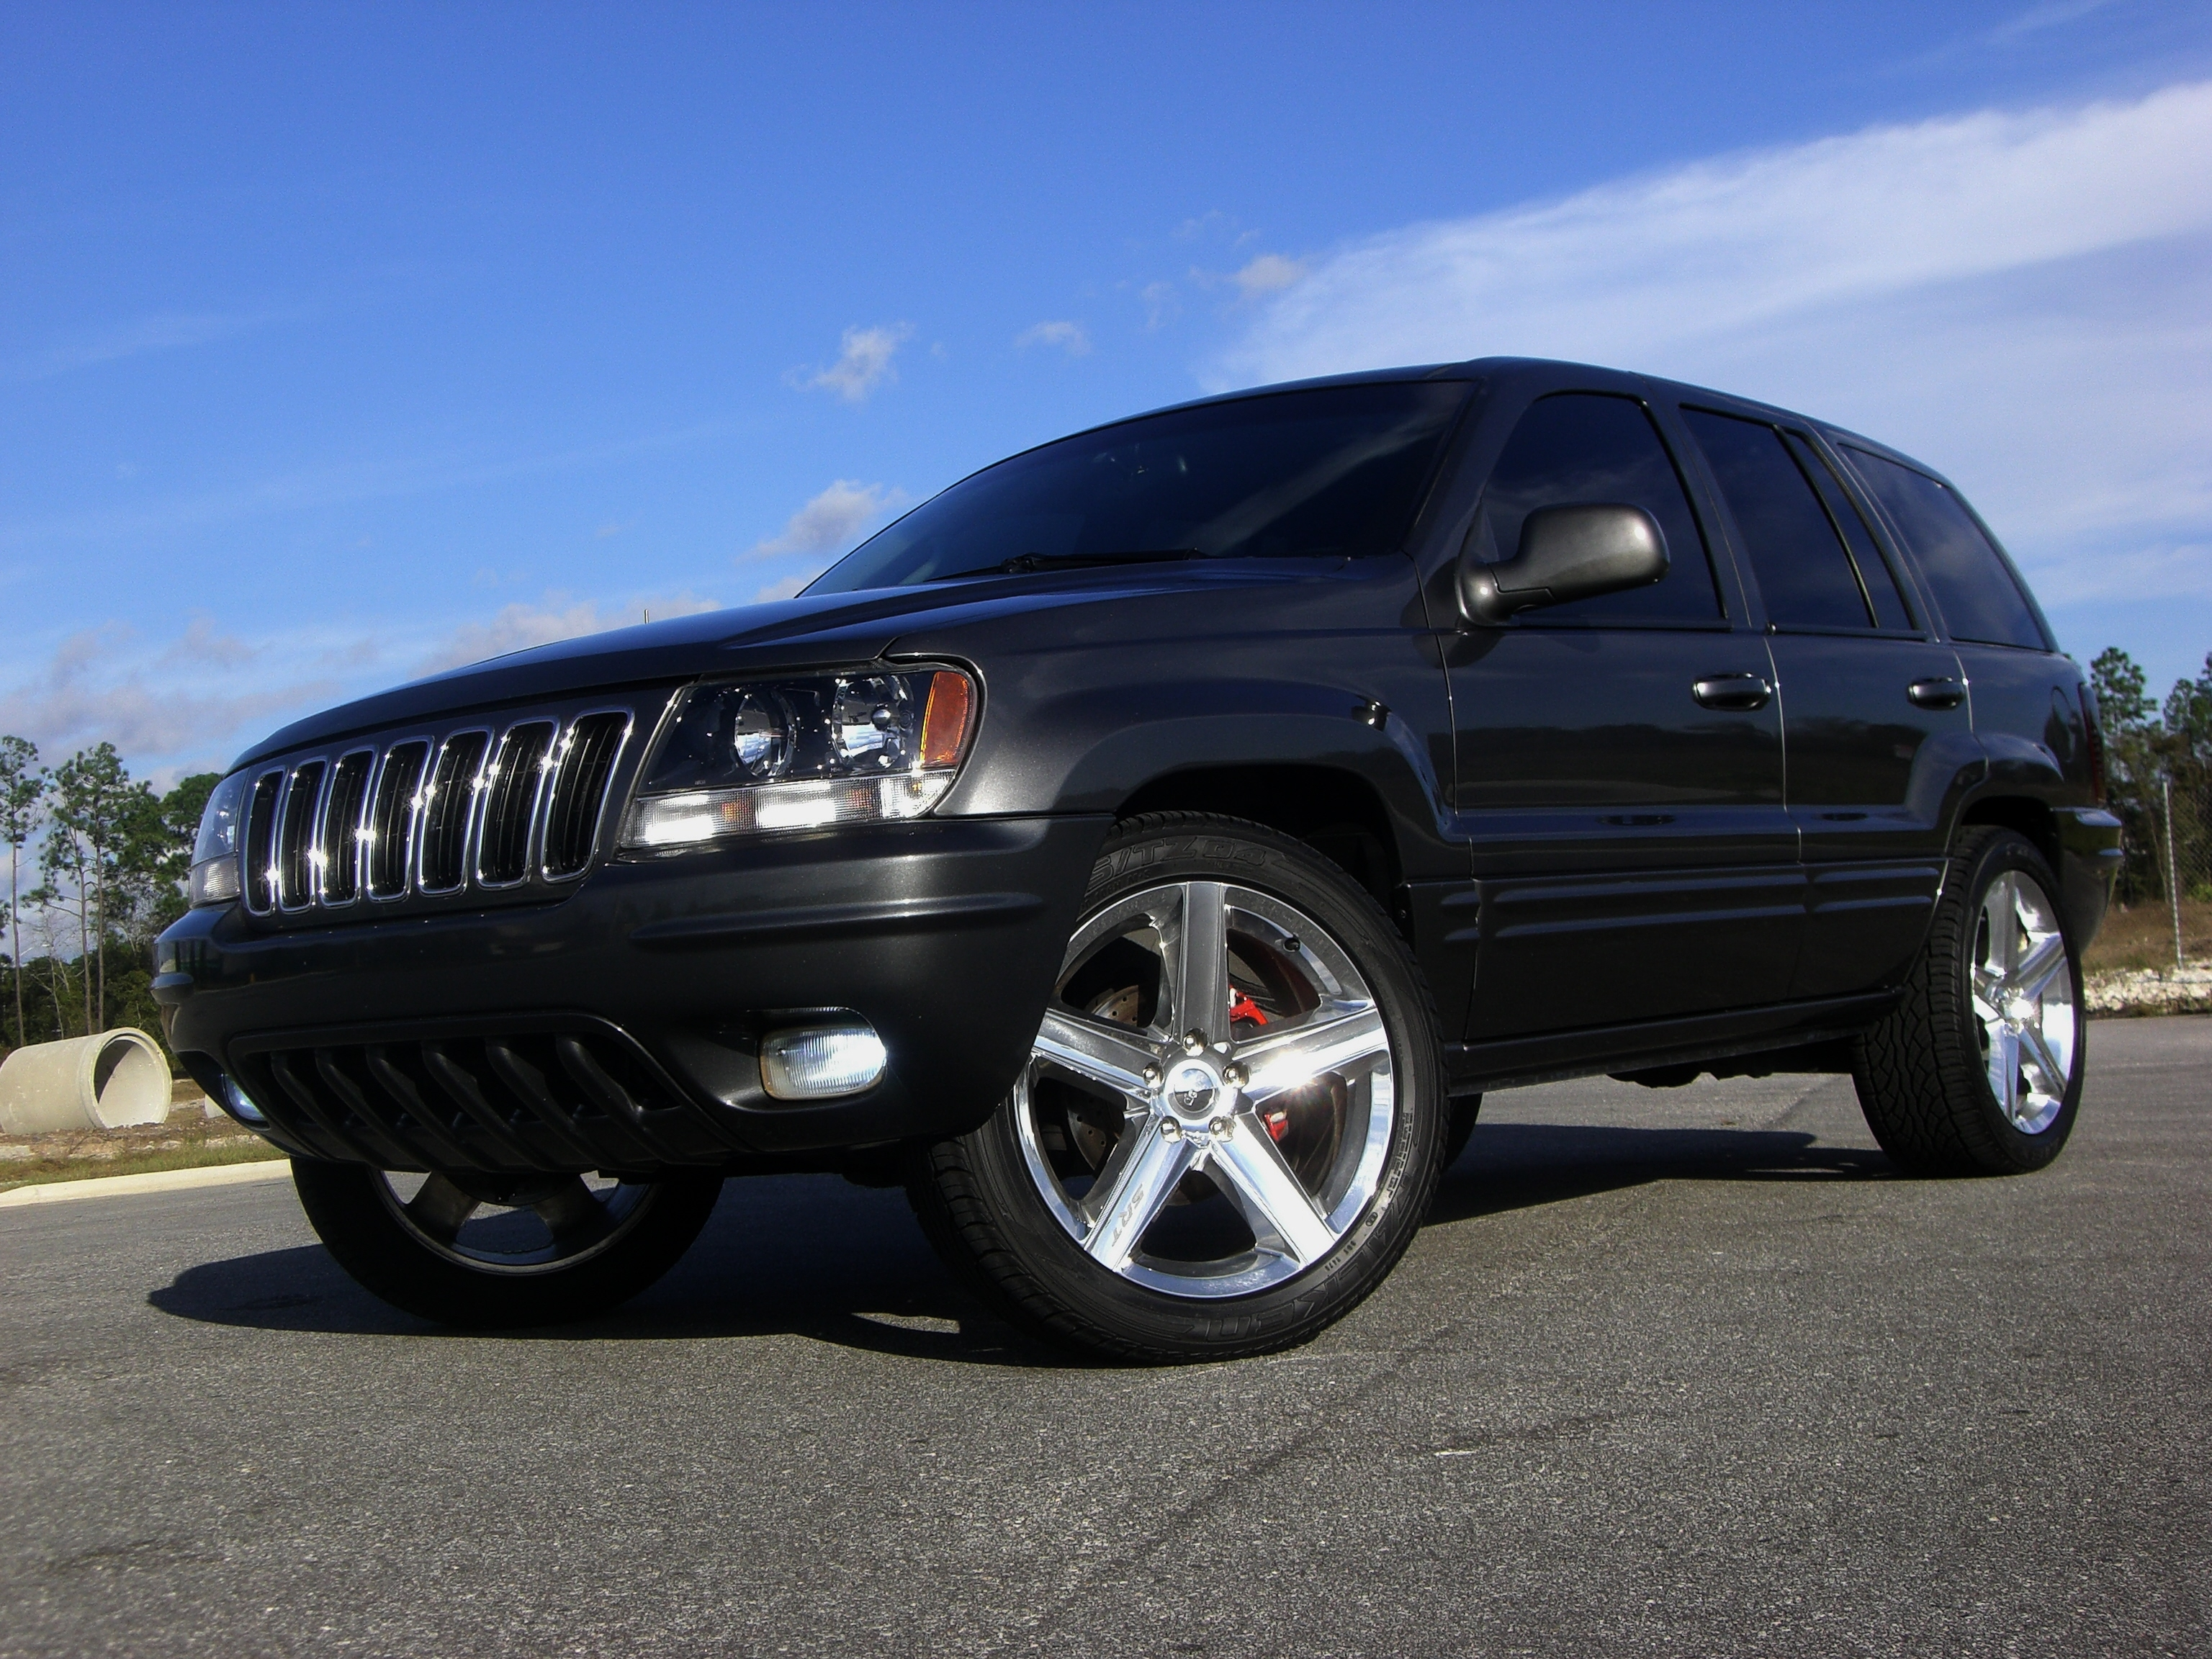 dreamer1213 2002 jeep grand cherokee specs photos modification info at cardomain cardomain